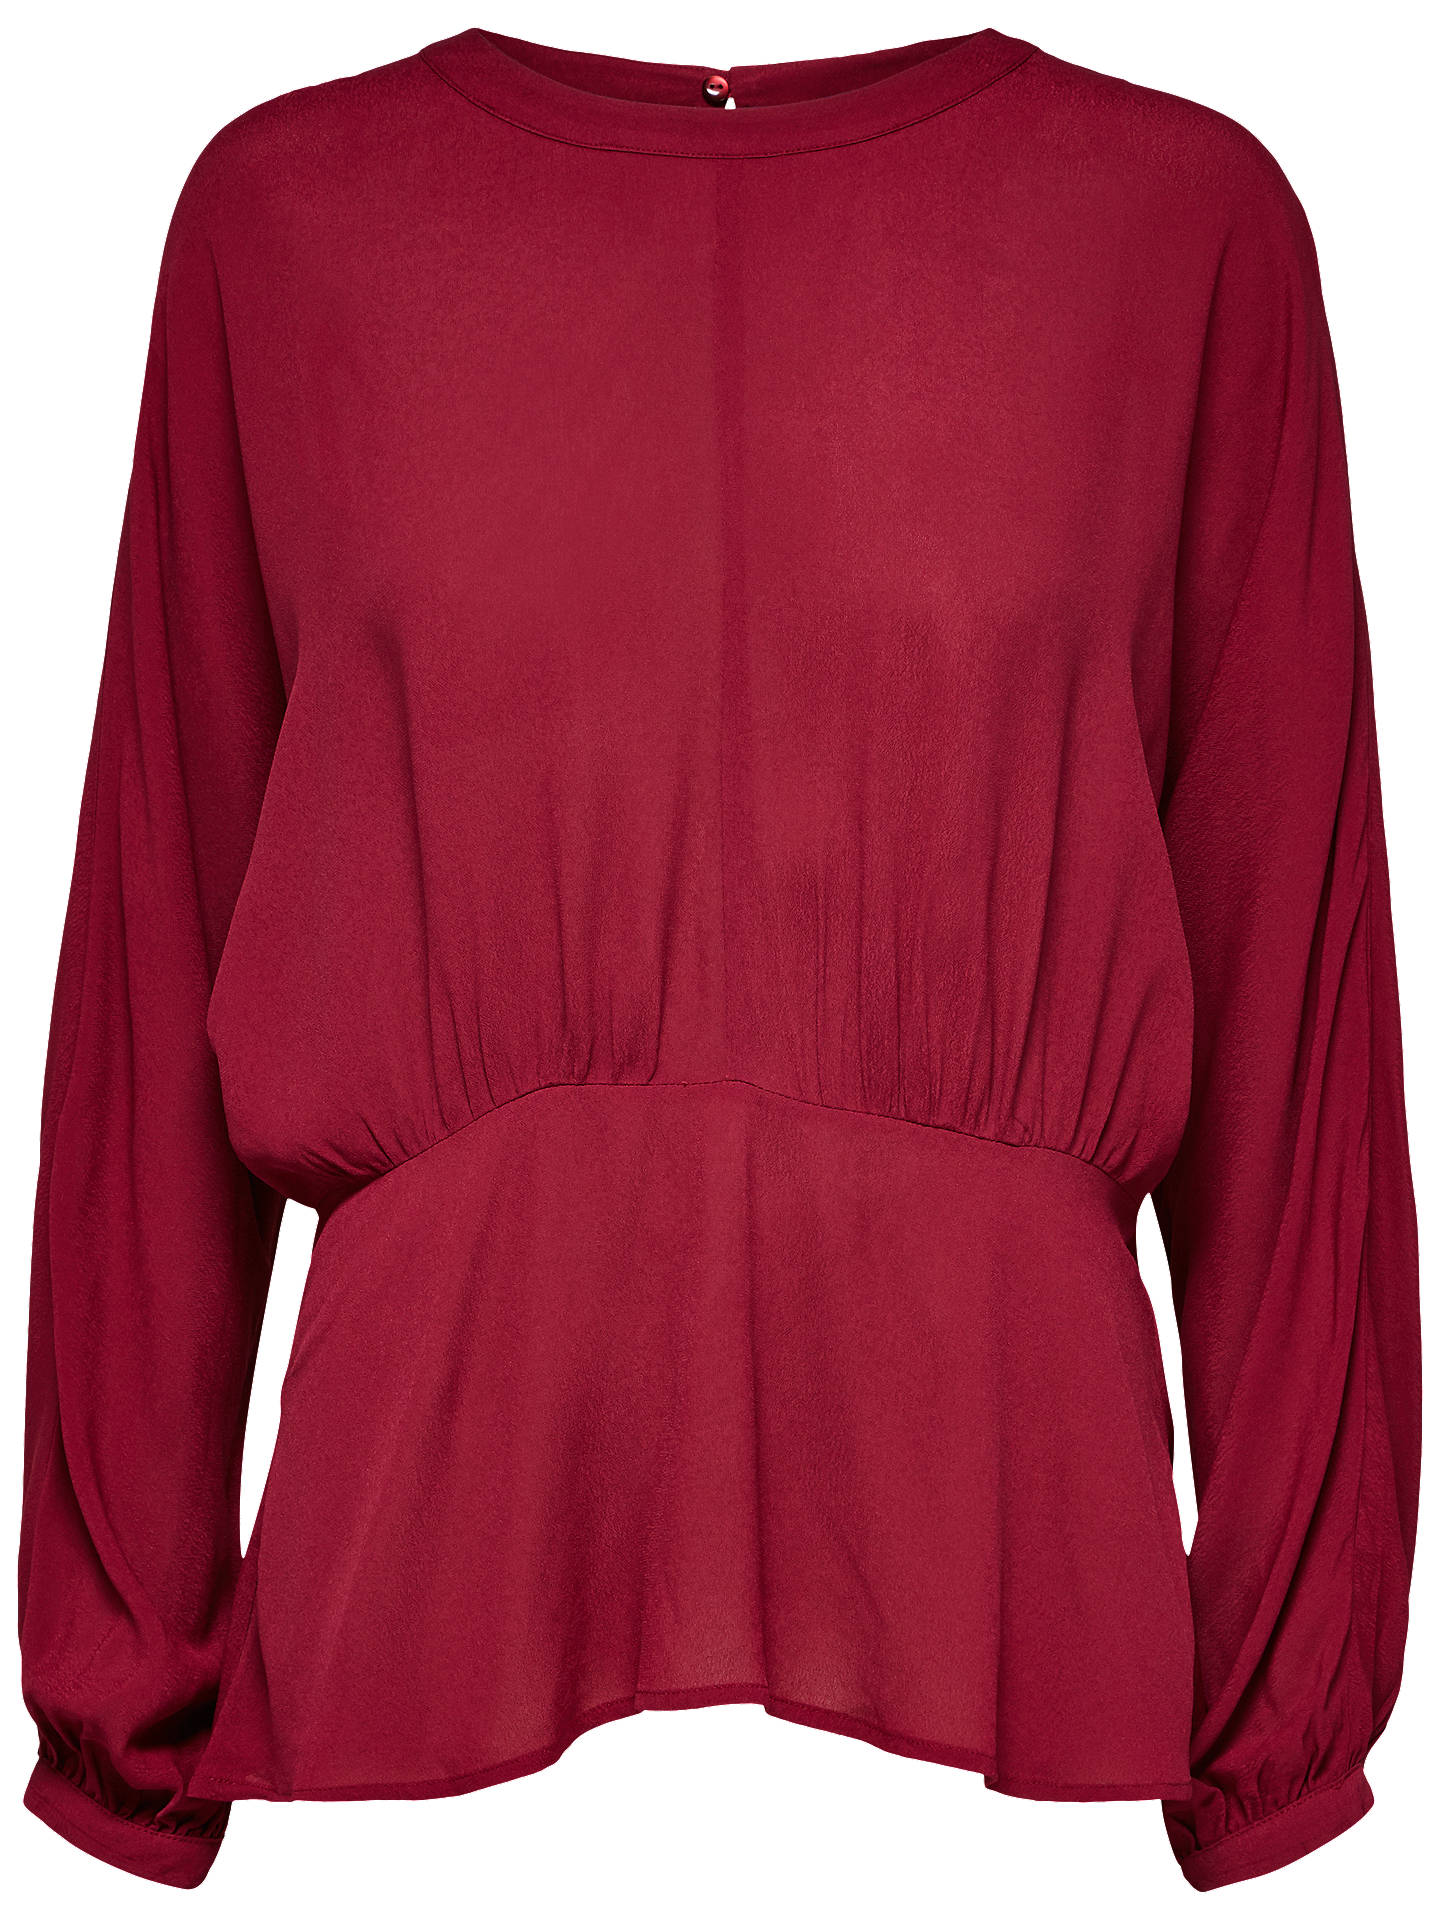 BuySelected Femme Baliva Top, Beet Red, 16 Online at johnlewis.com